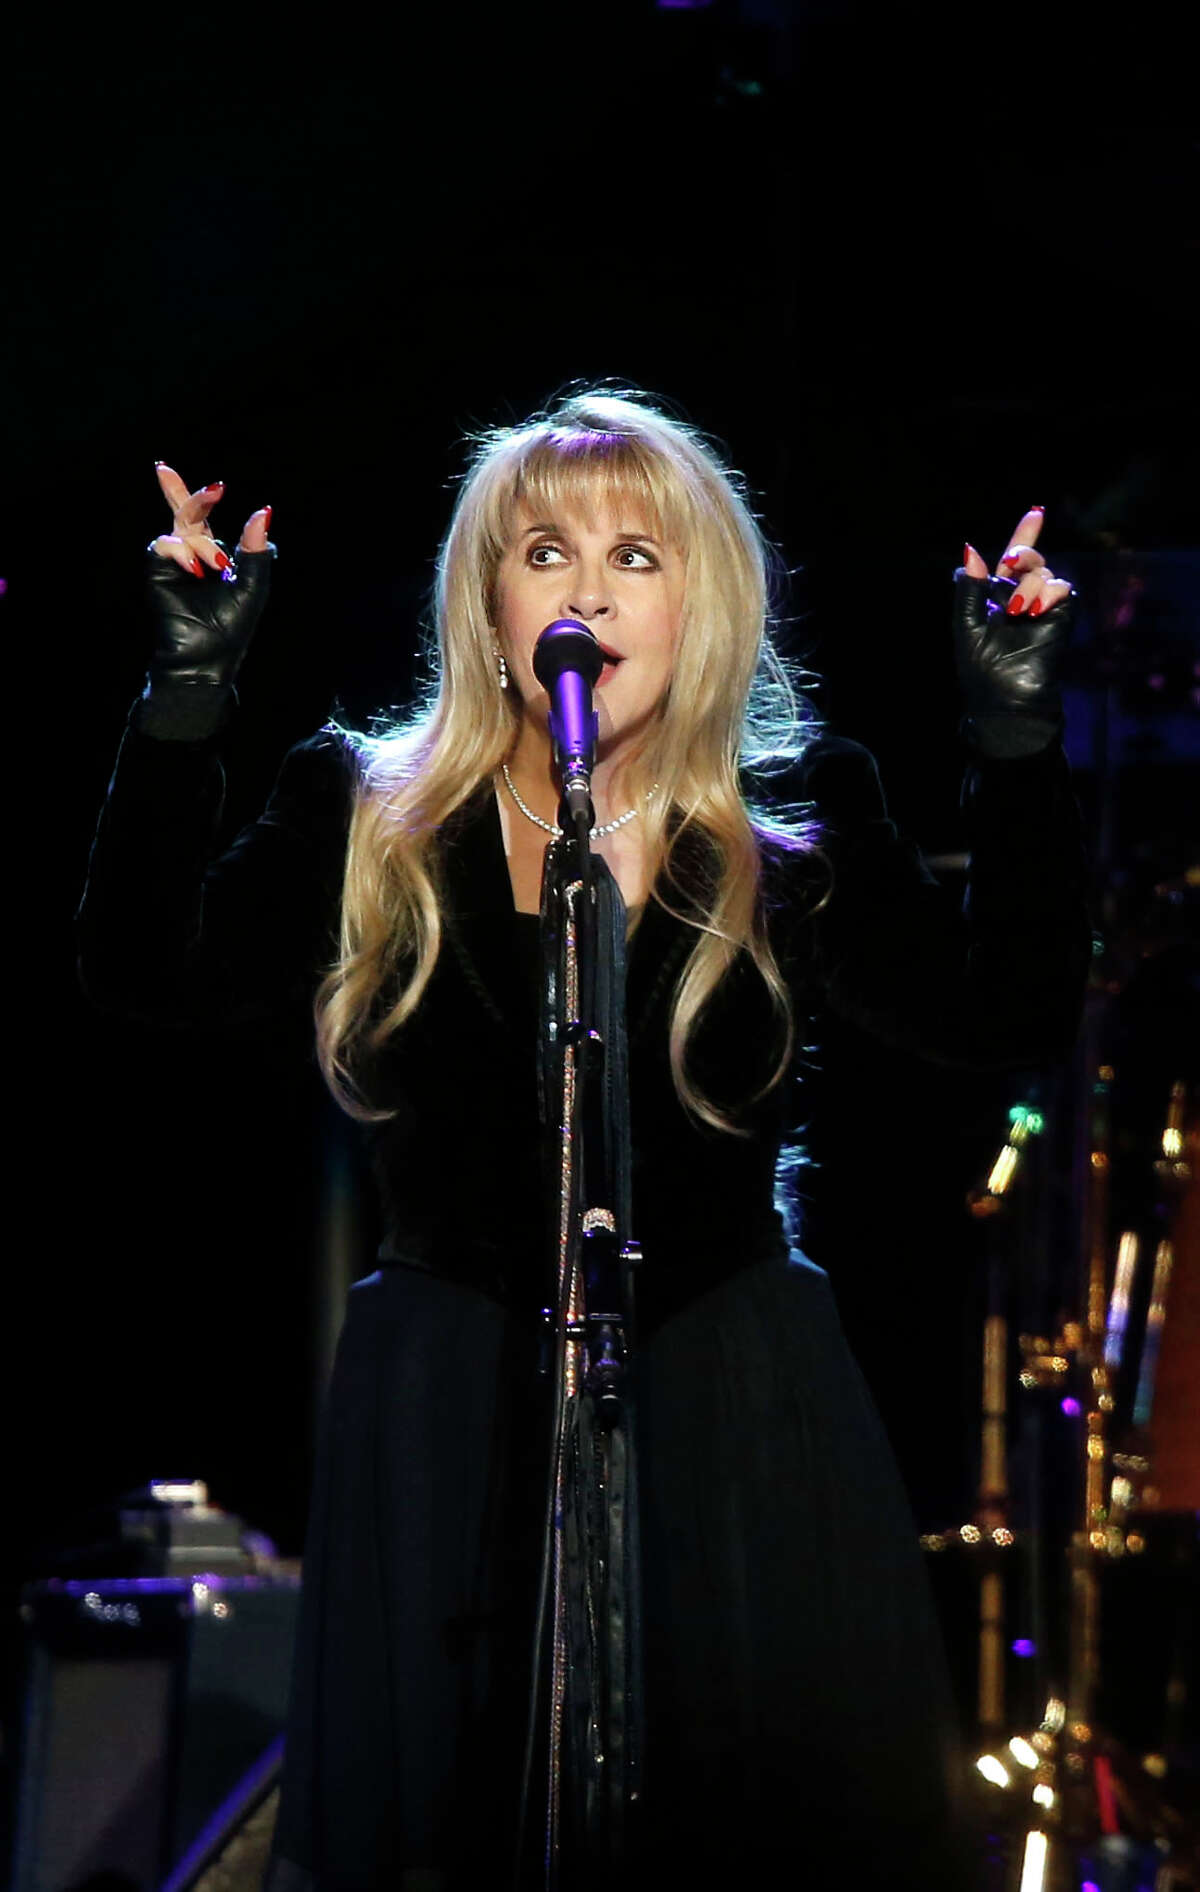 Singer Stevie Nicks performs during a Fleetwood Mac concert at Madison Square Garden, Monday, April 8, 2013, in New York.